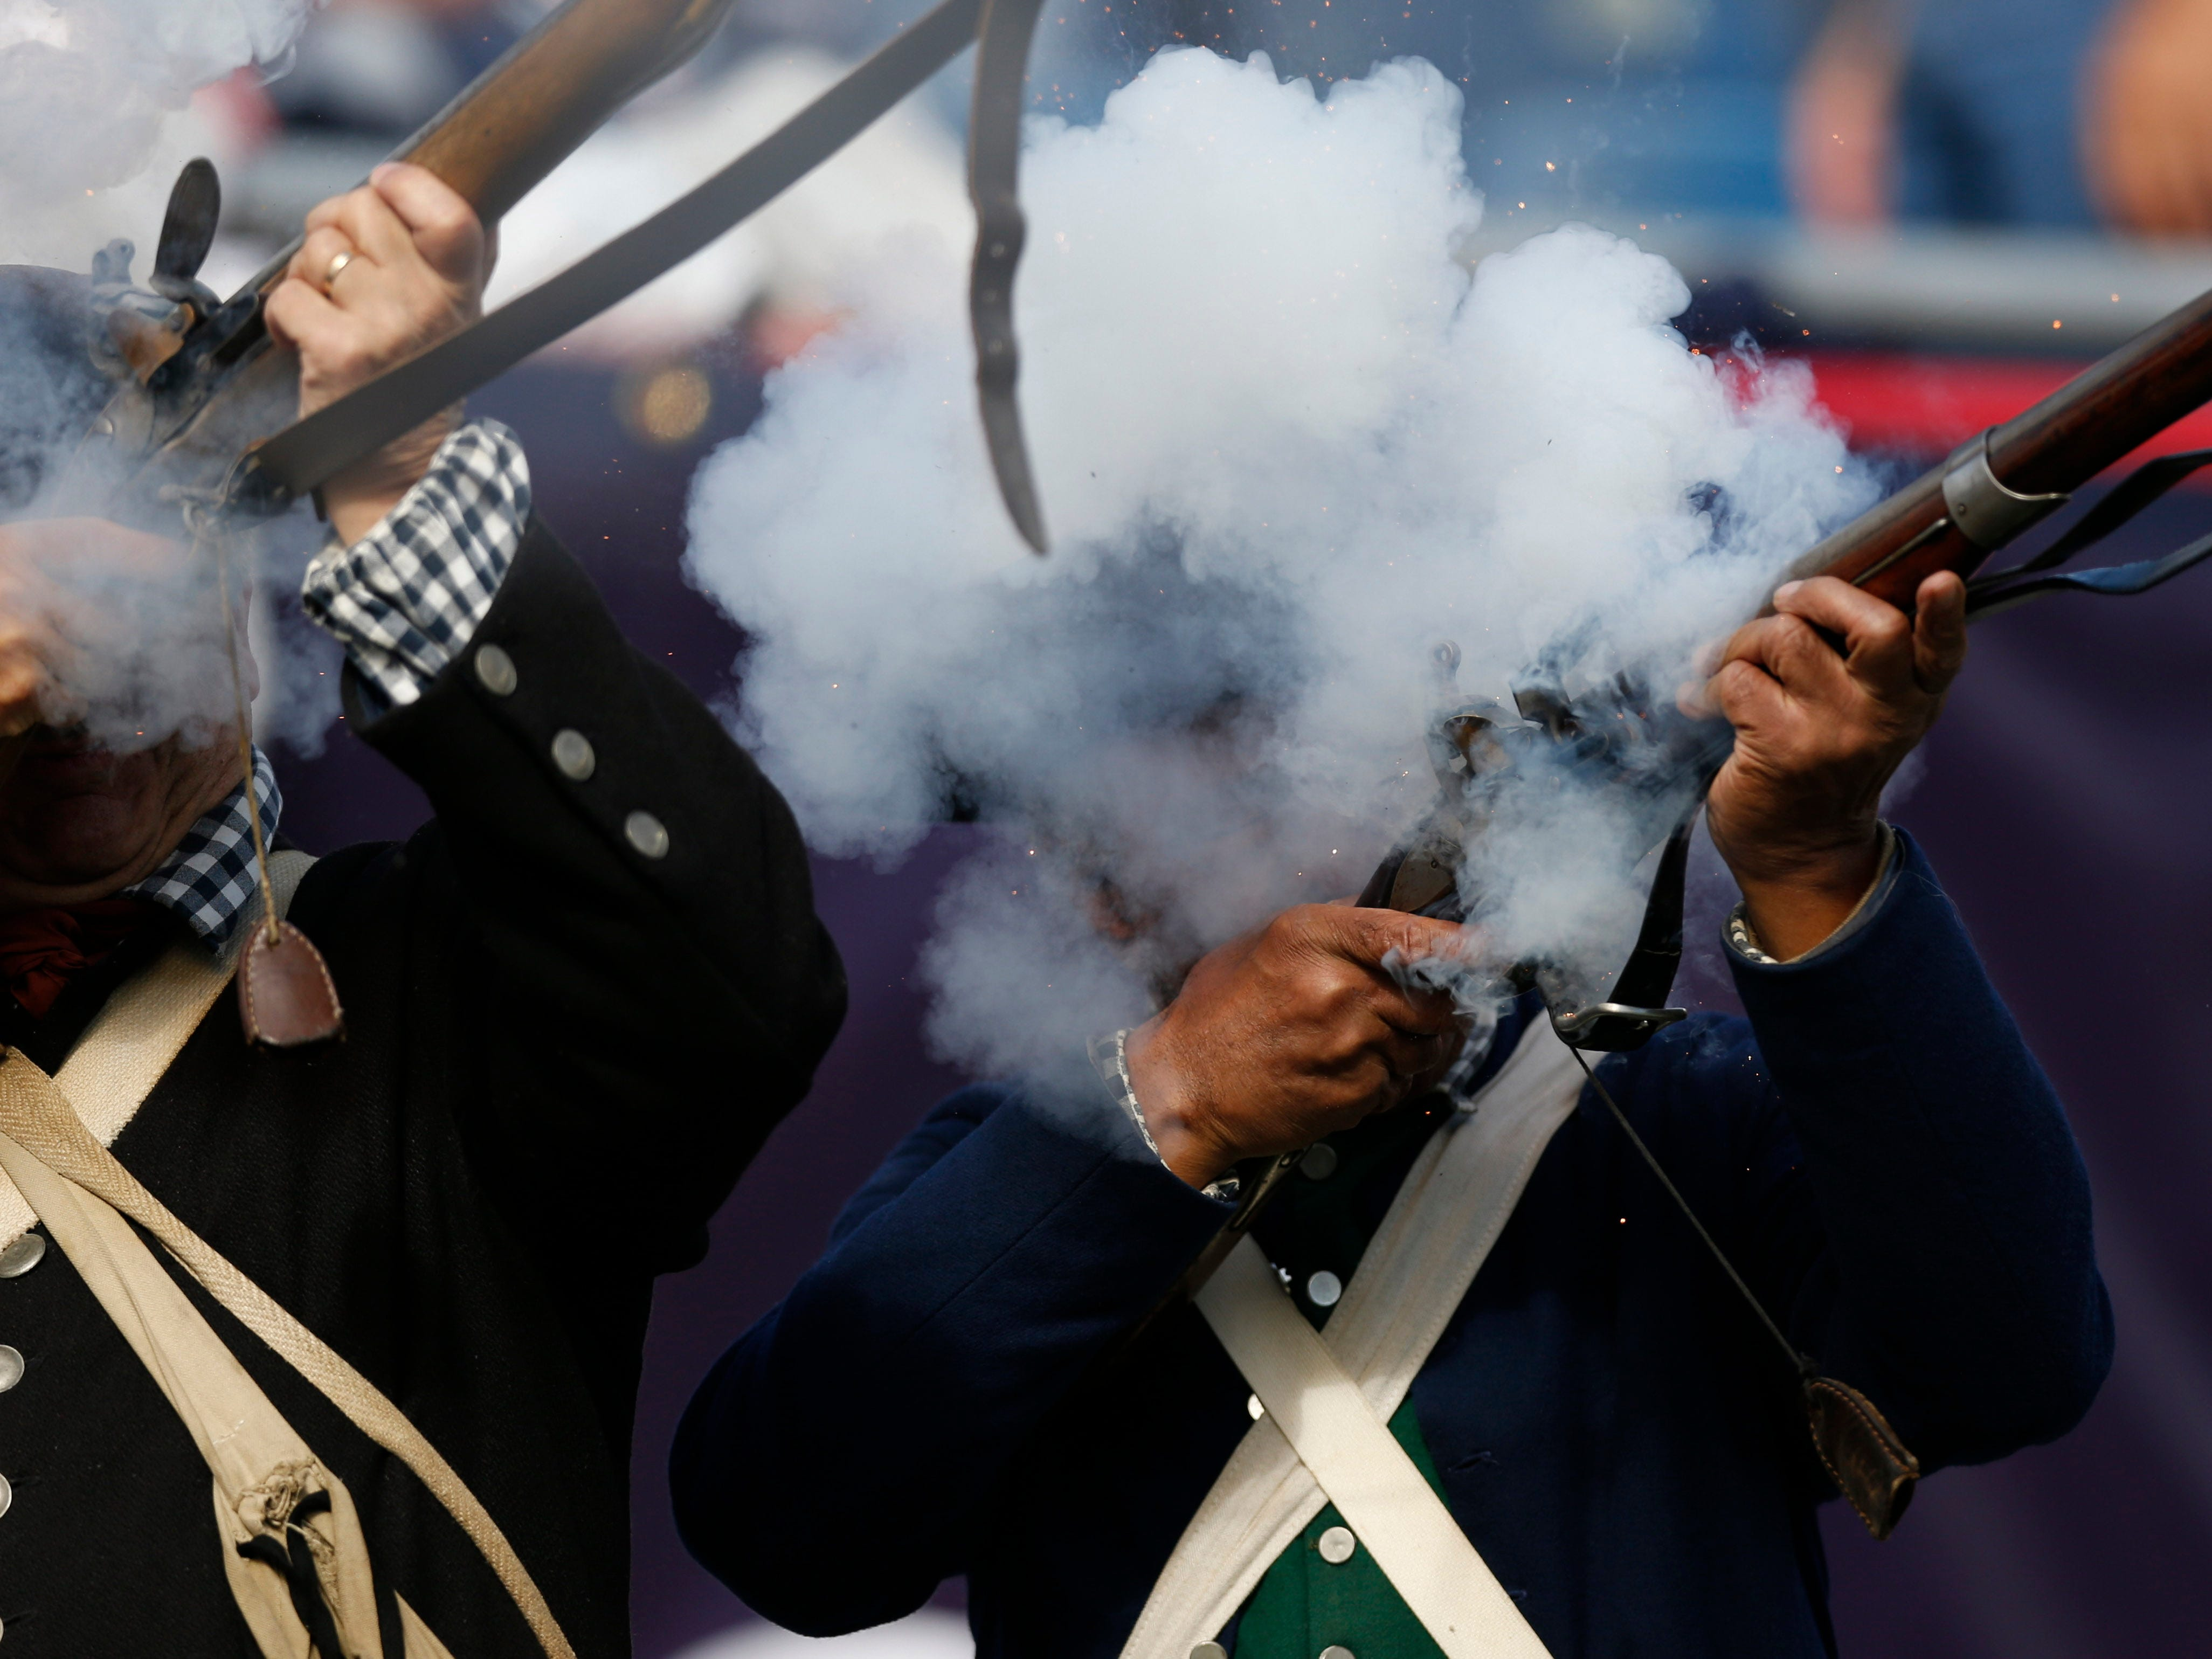 A member of the New England Patriots end zone militia fires a shot after a touchdown during the second quarter against the Miami Dolphins at Gillette Stadium.